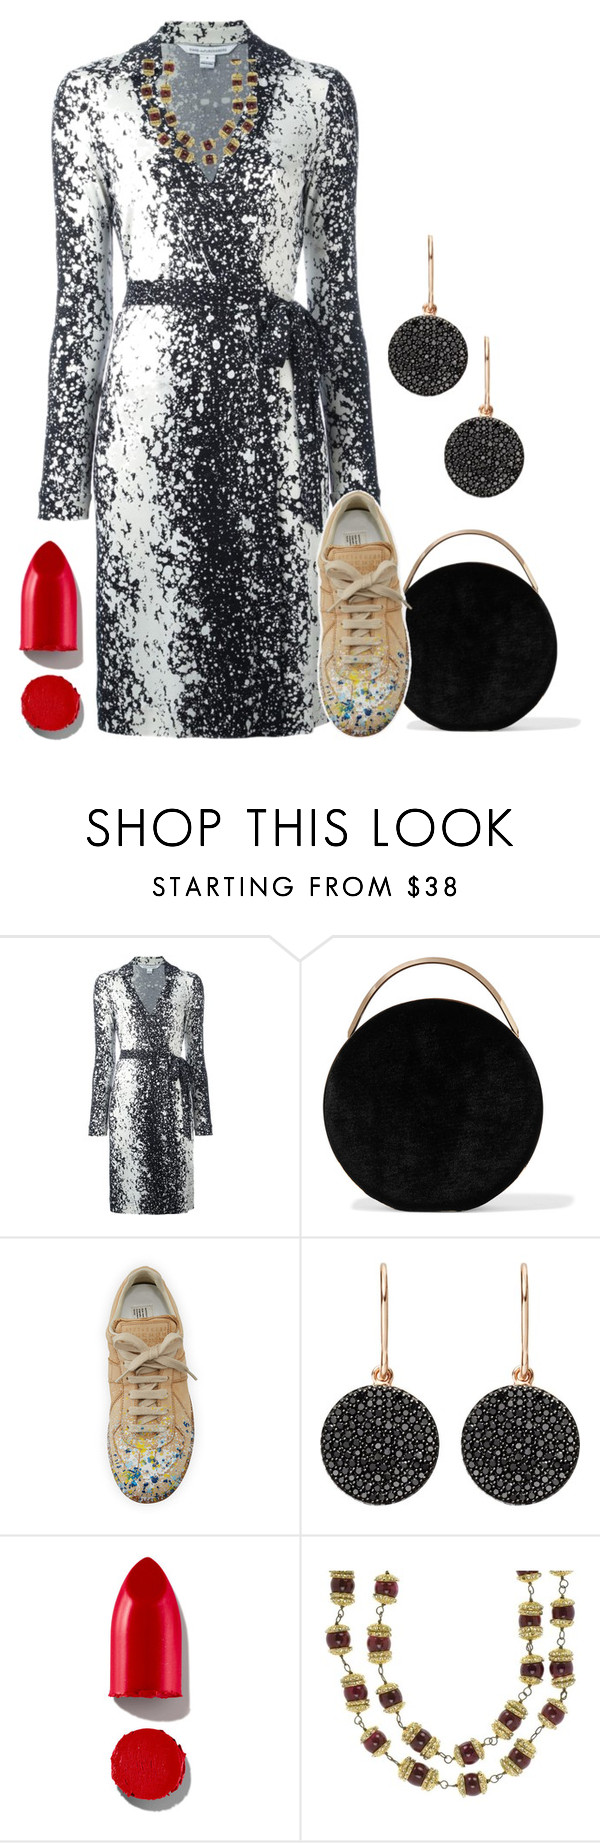 """""""So classy, so simple - so unquie"""" by no-where-girl ❤ liked on Polyvore featuring Diane Von Furstenberg, Eddie Borgo, Maison Margiela, Astley Clarke, Rodin and Chanel"""